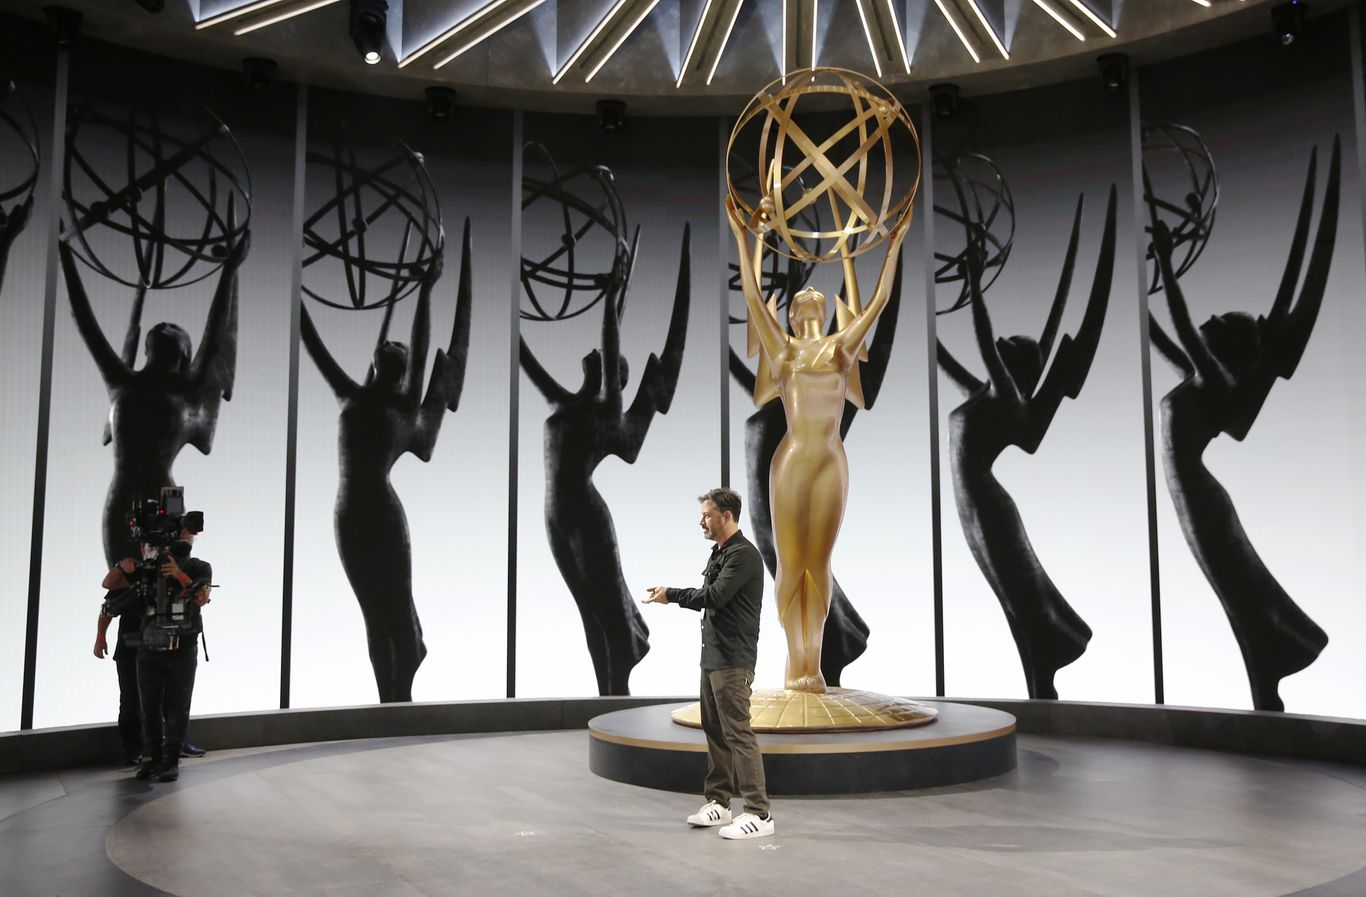 Virtual Emmys address chaotic year for American TV and society